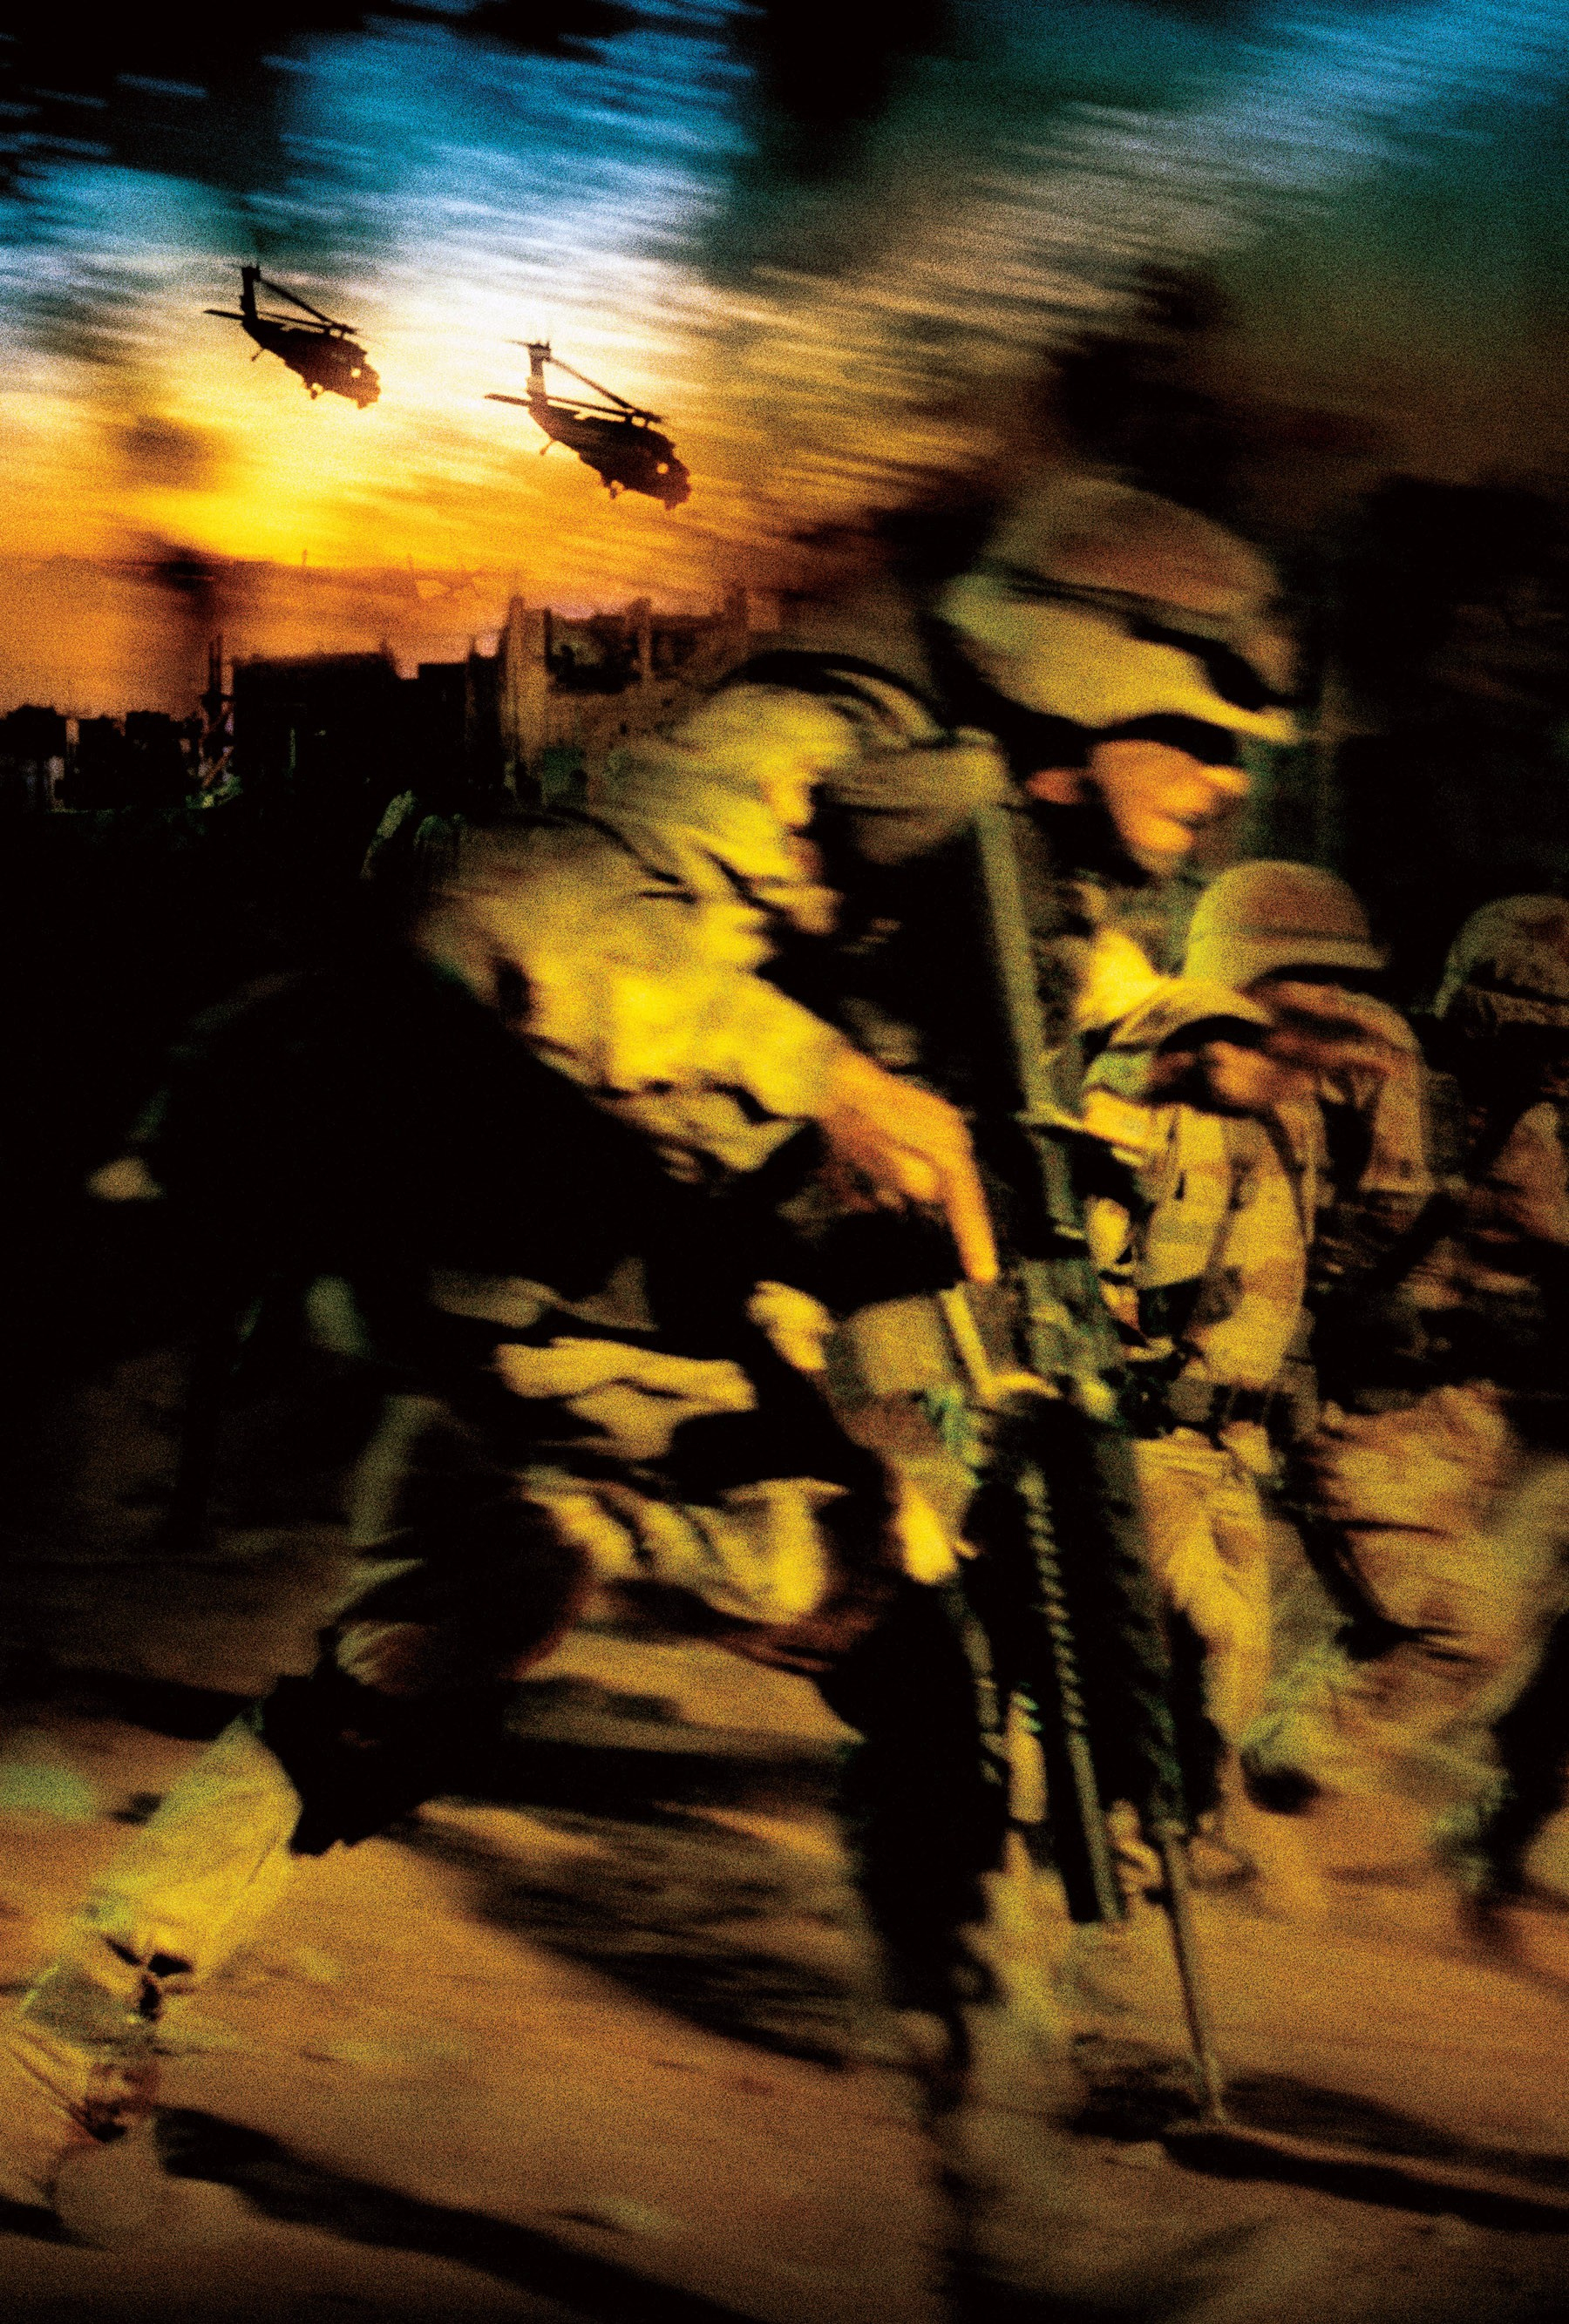 Movies That Do War Justice, According to Veterans